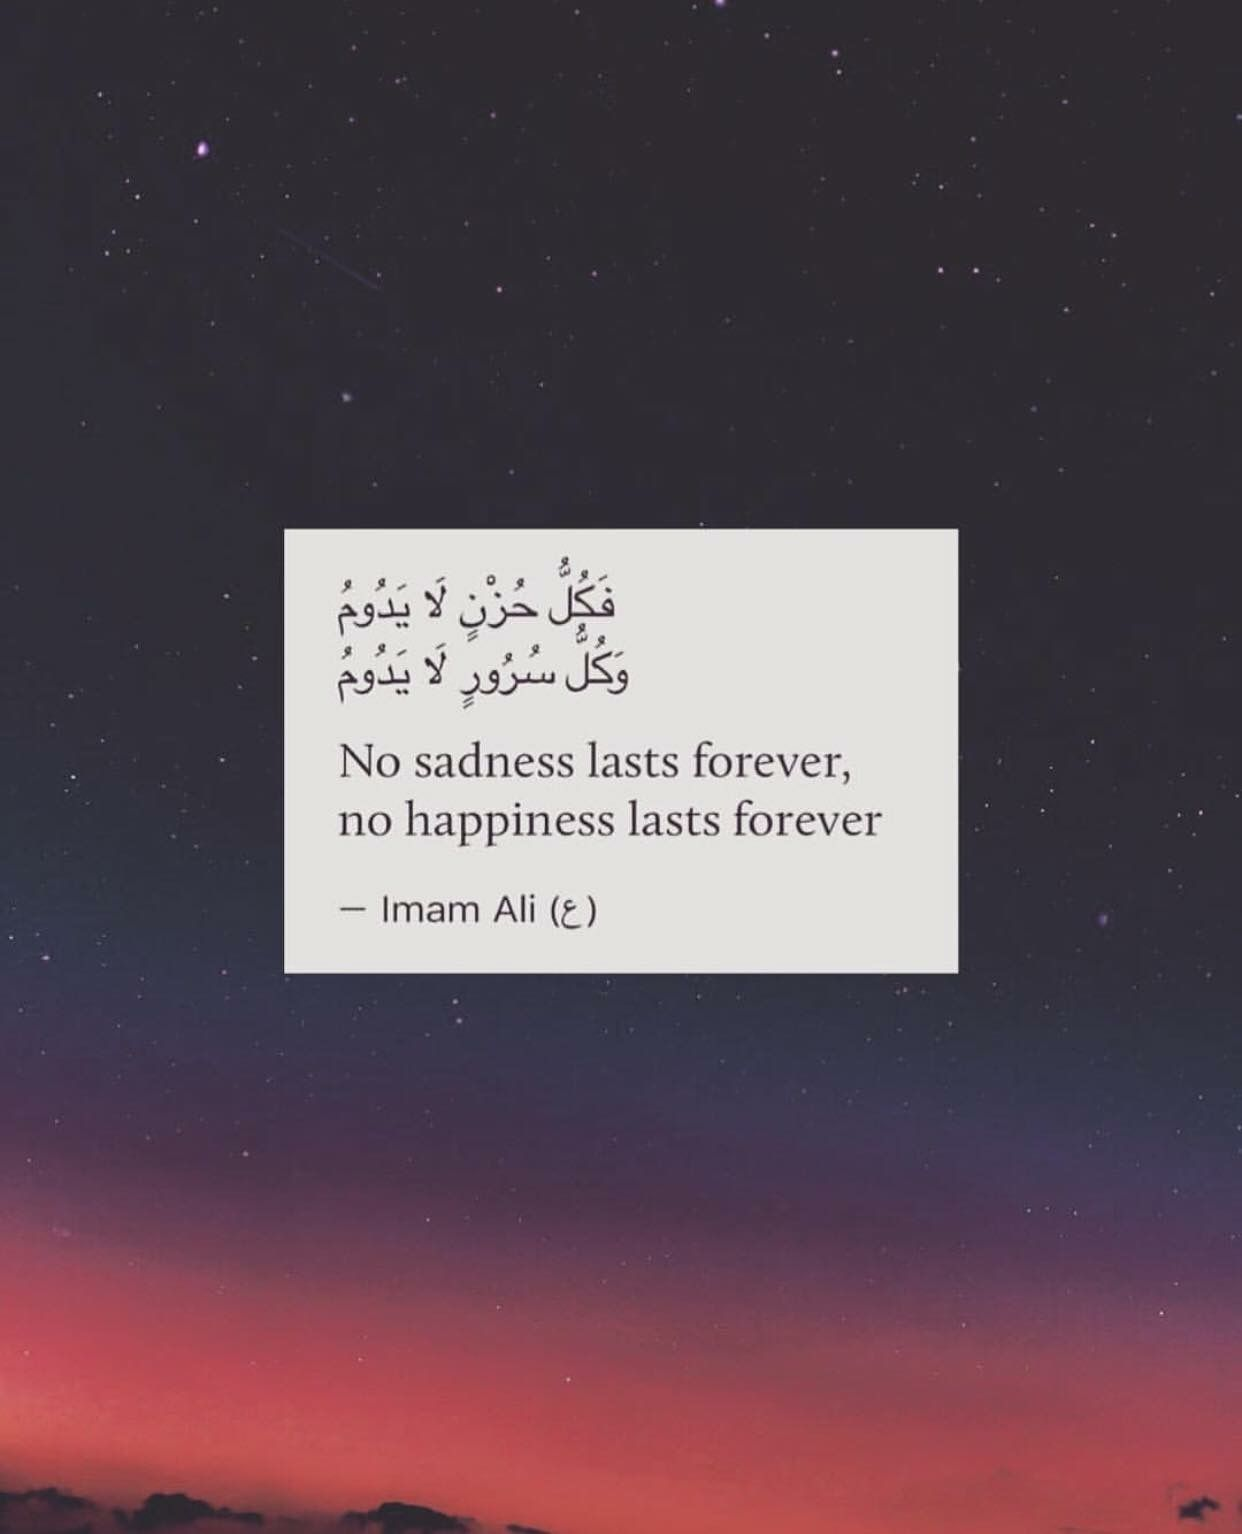 Pin By Dyleh On Alhamdulillah Ali Quotes Imam Ali Quotes Quran Quotes